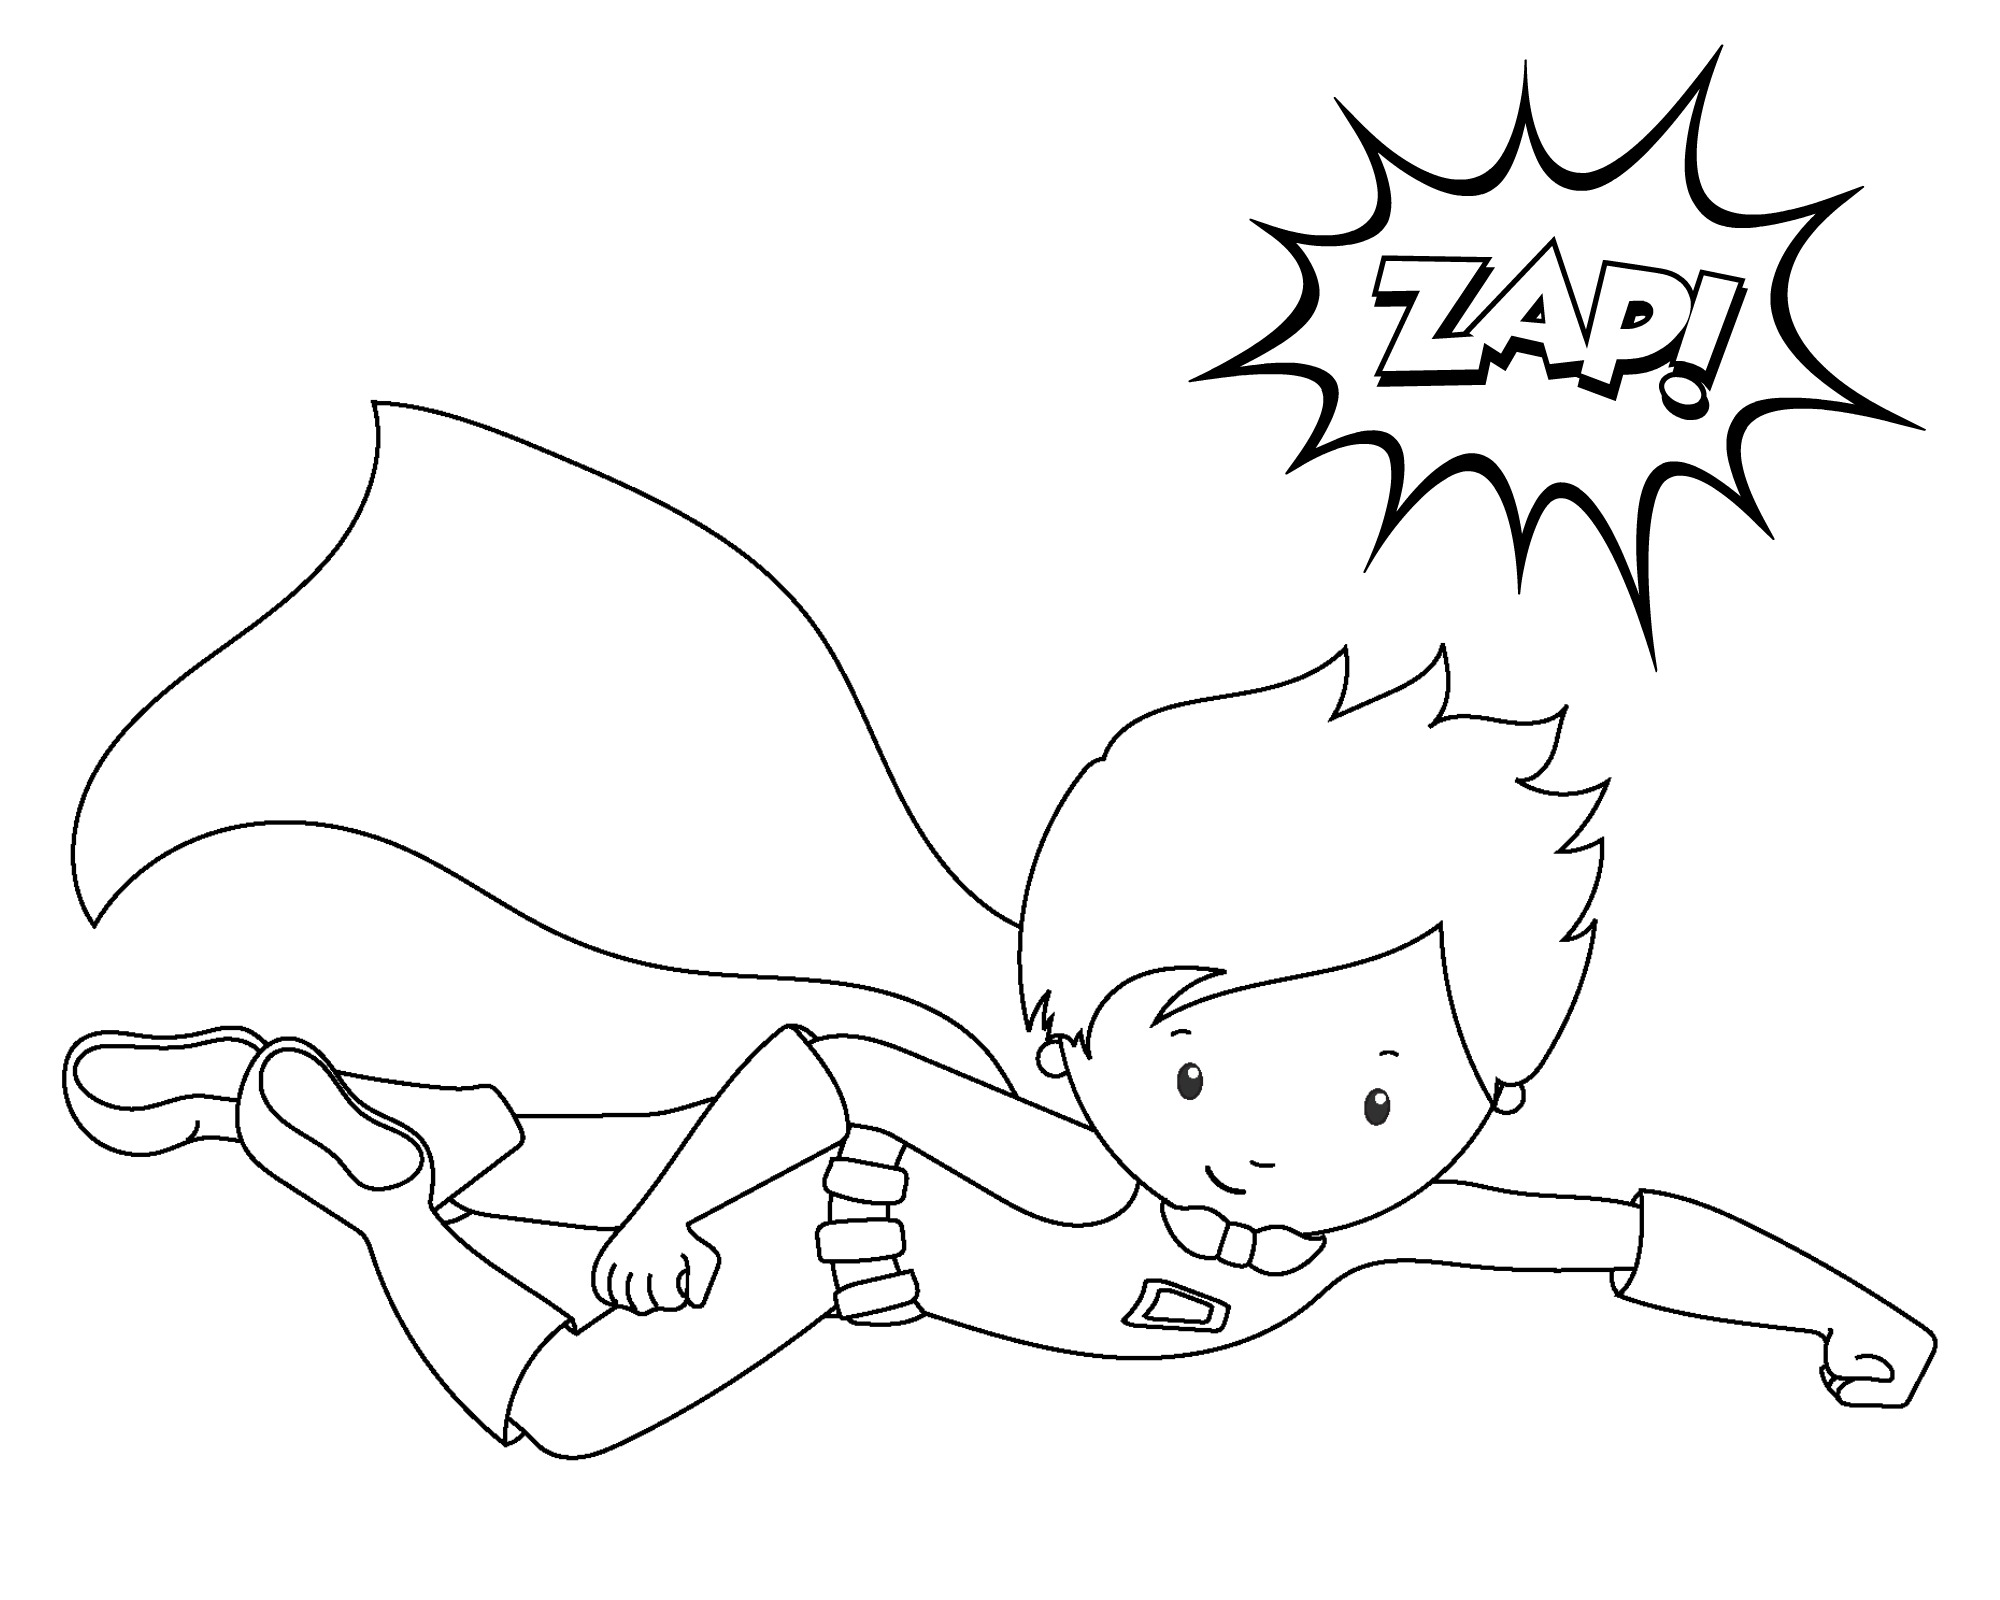 child superhero coloring pages - photo#9